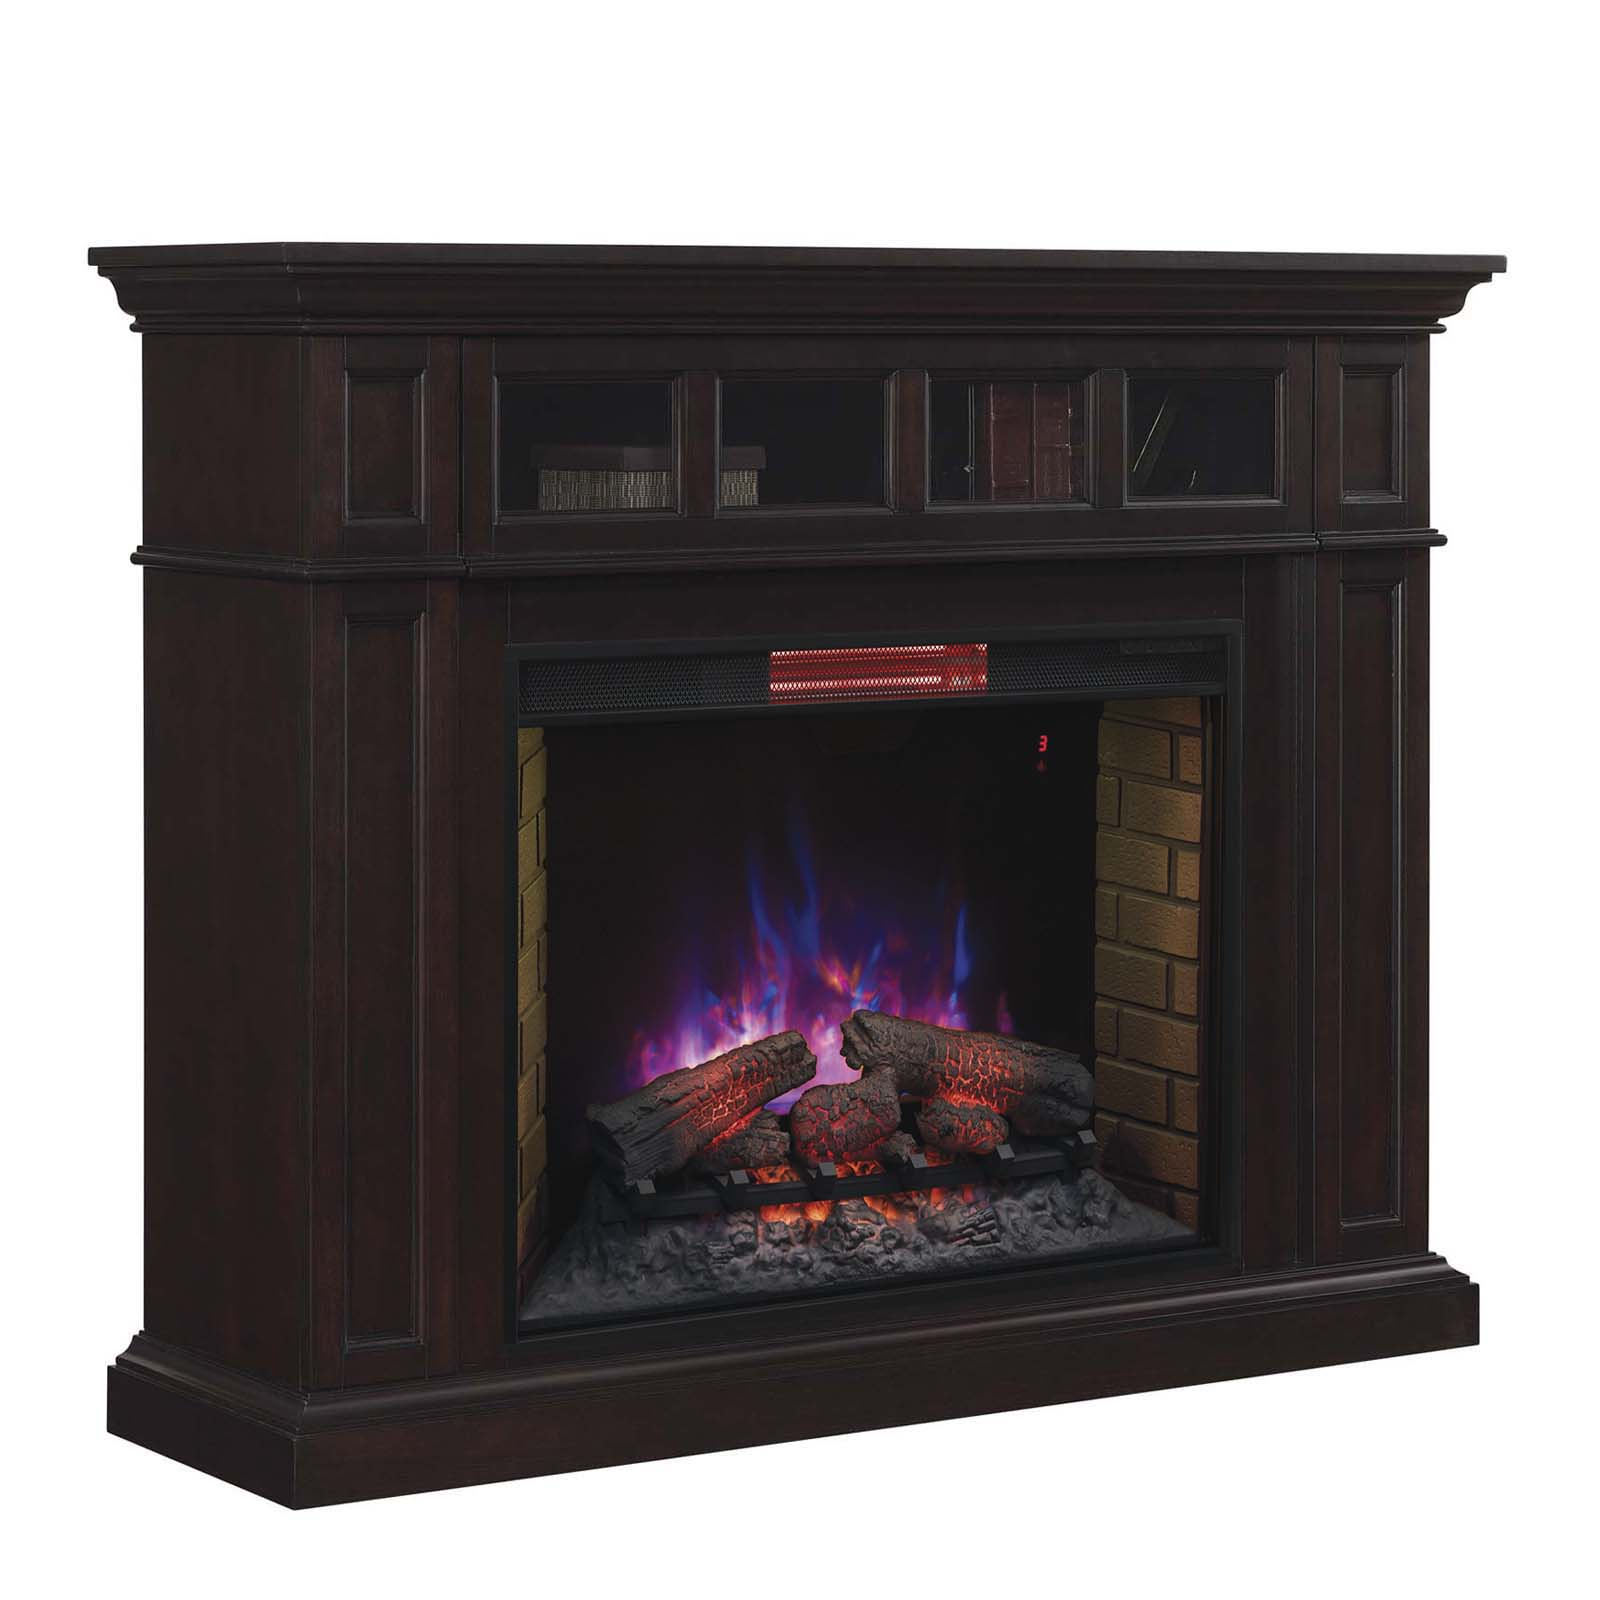 Chimney Free Estate Wall Mantel Electric Fireplace With Infrared Insert Fireplaces At Hayneedle